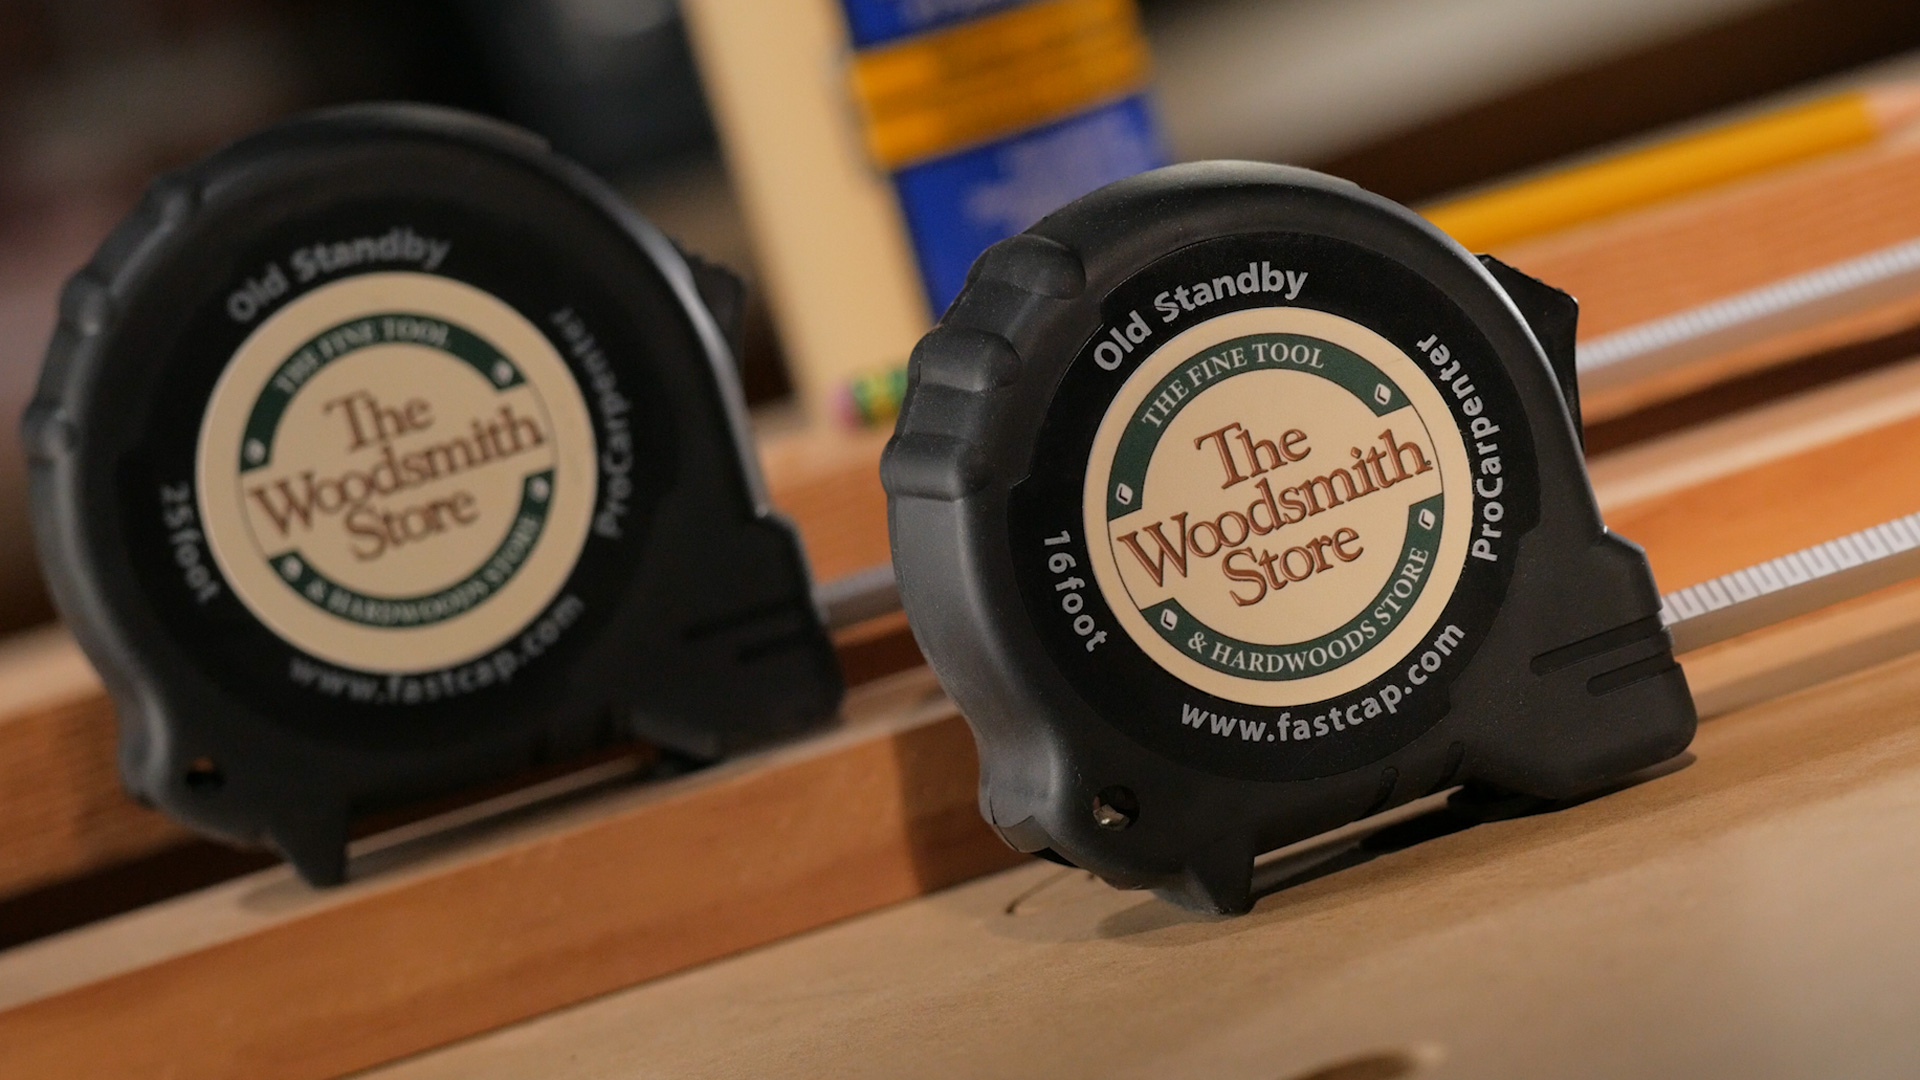 Special Edition Woodsmith Store Measuring Tape Set